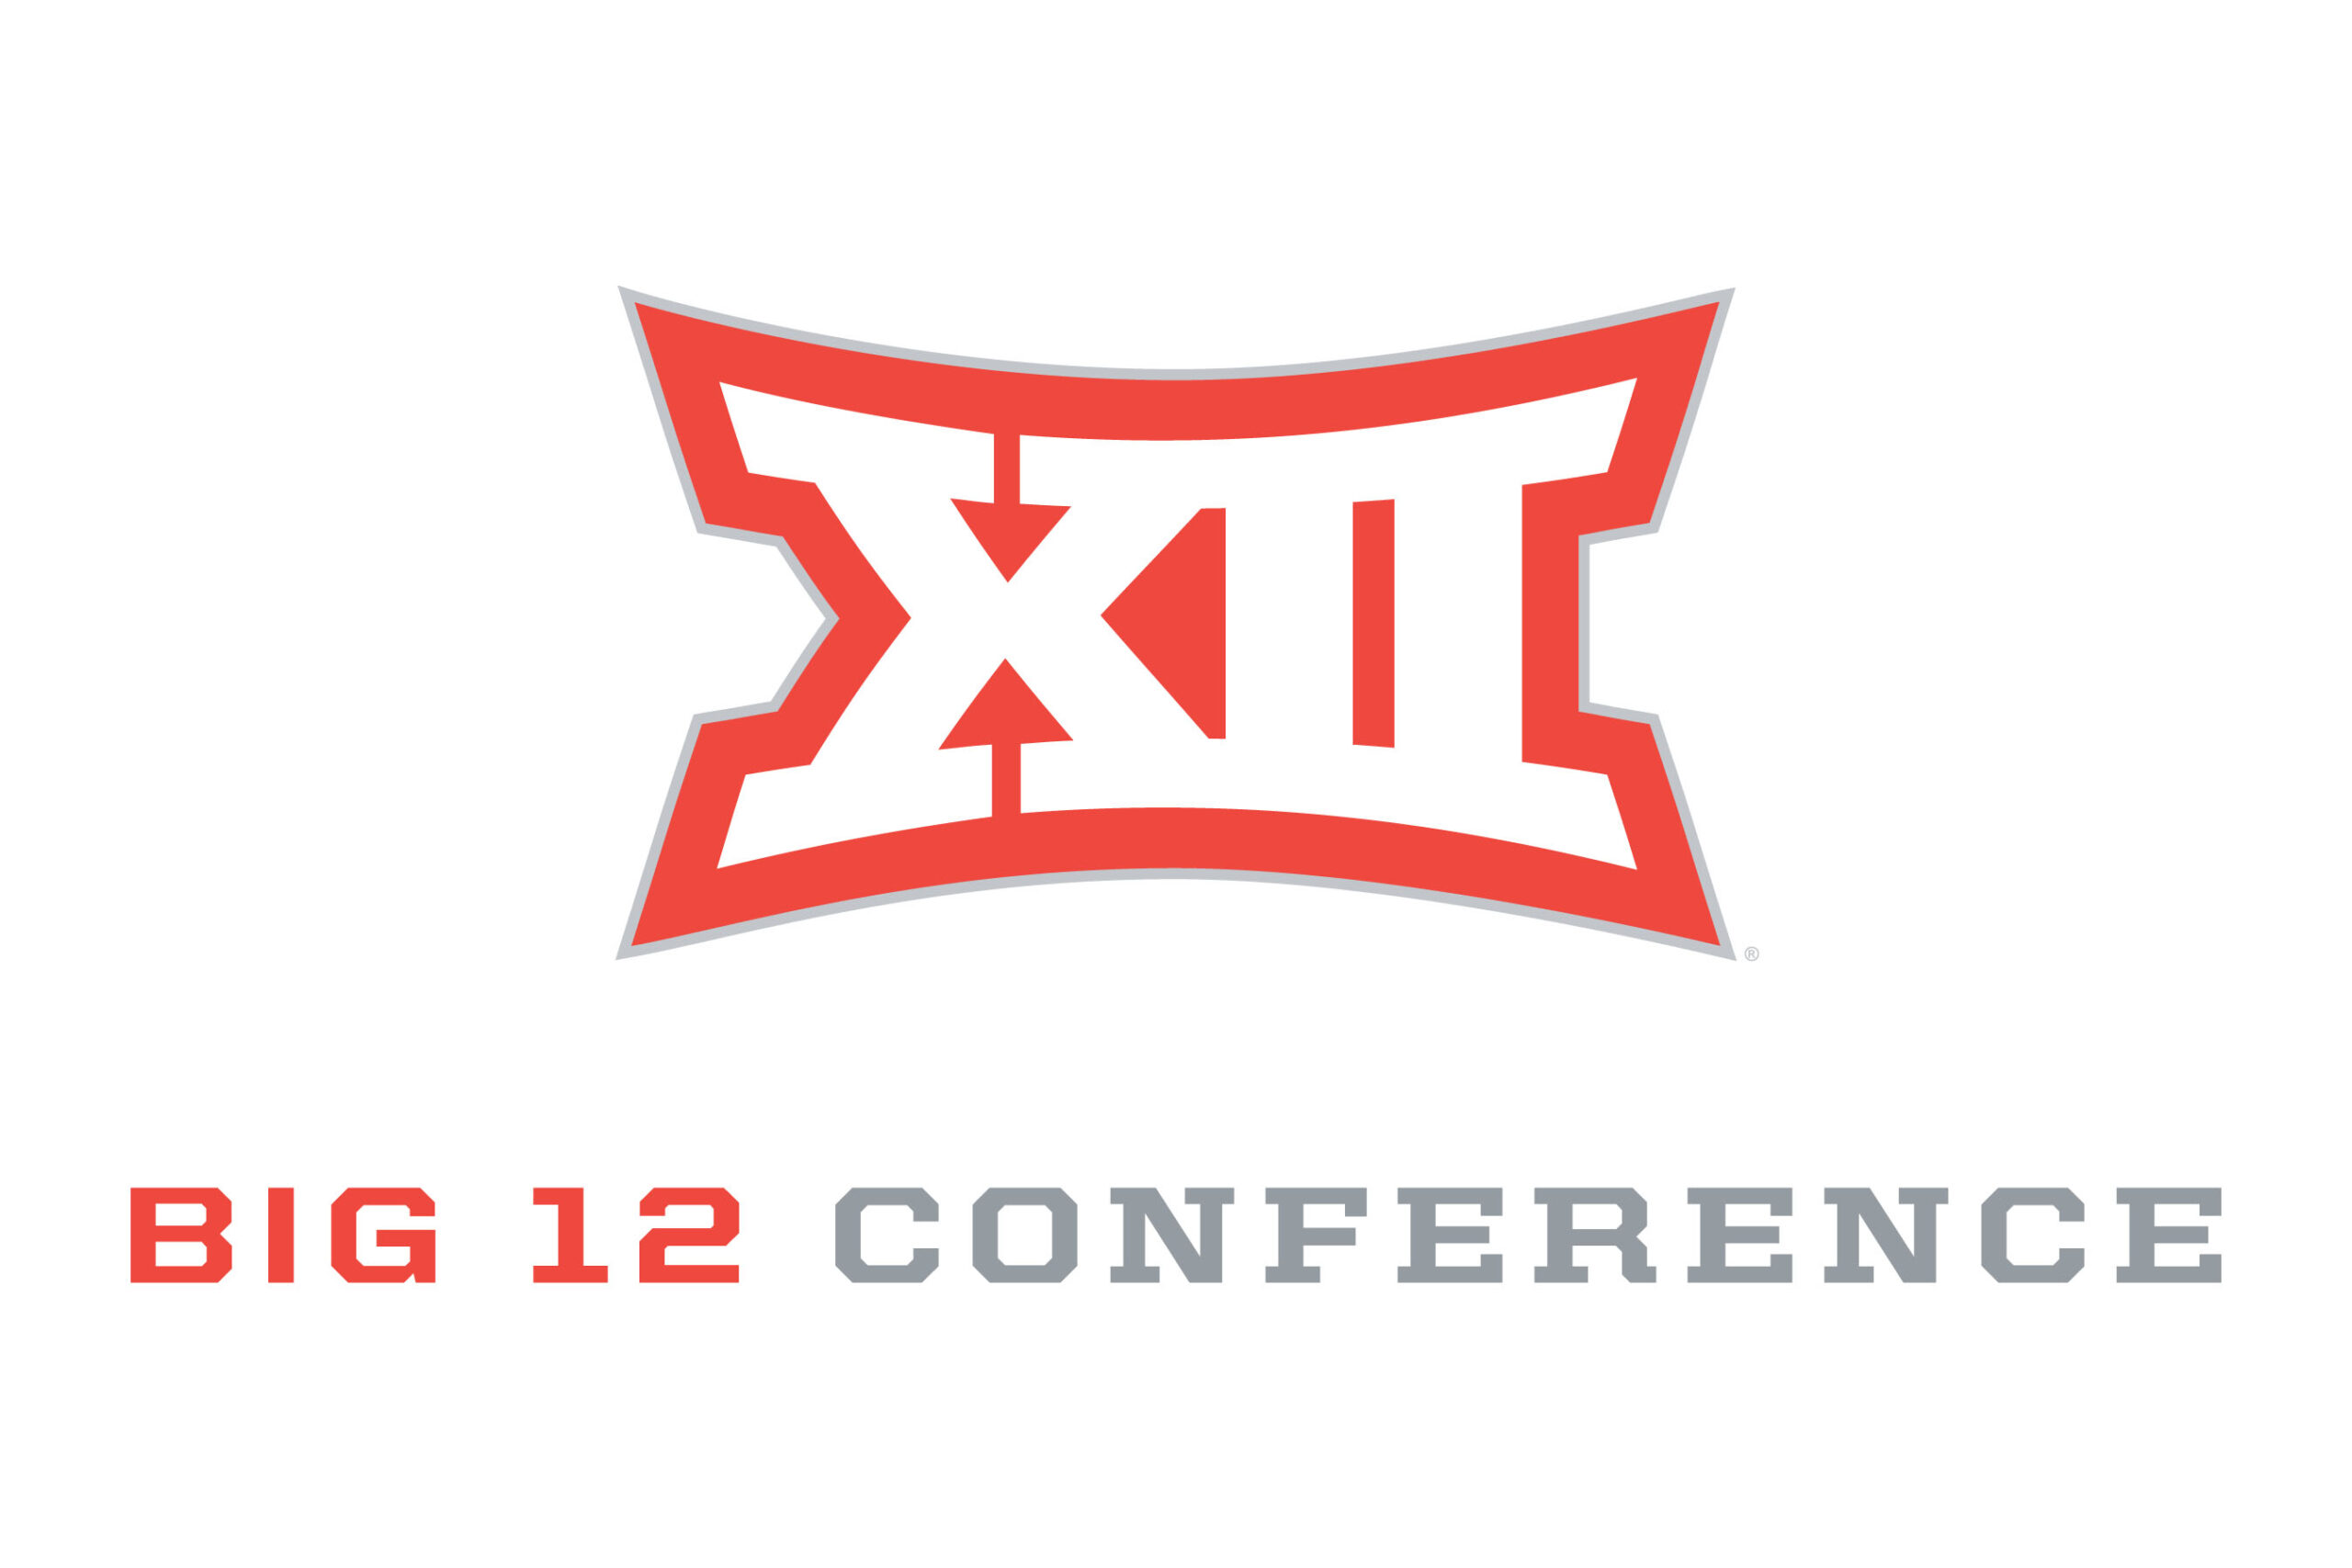 Week 4 Conference Notes: Big 12 Conference